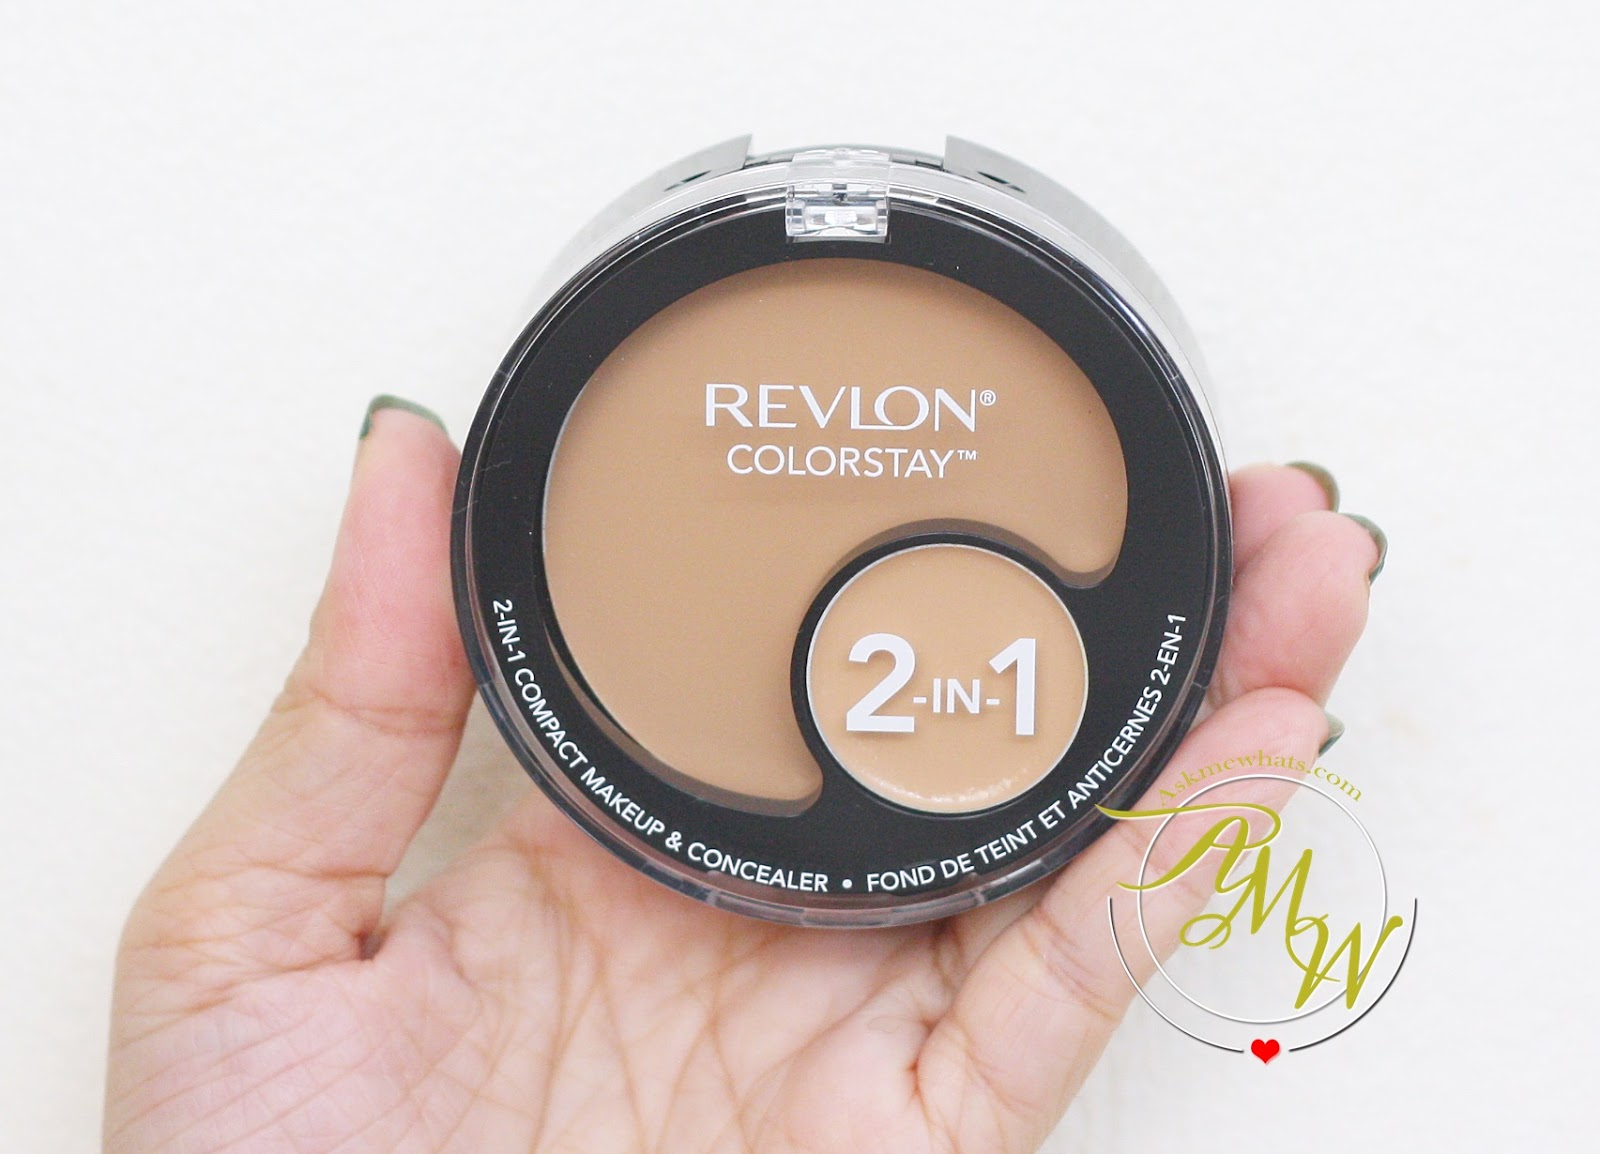 Askmewhats Top Beauty Blogger Philippines Skincare Makeup Review Revlon Photoready Airbrush Effect Nude Revlons Colorstay 2 In 1 Compact Is An Expertly Matched Concealer That Lasts All Day